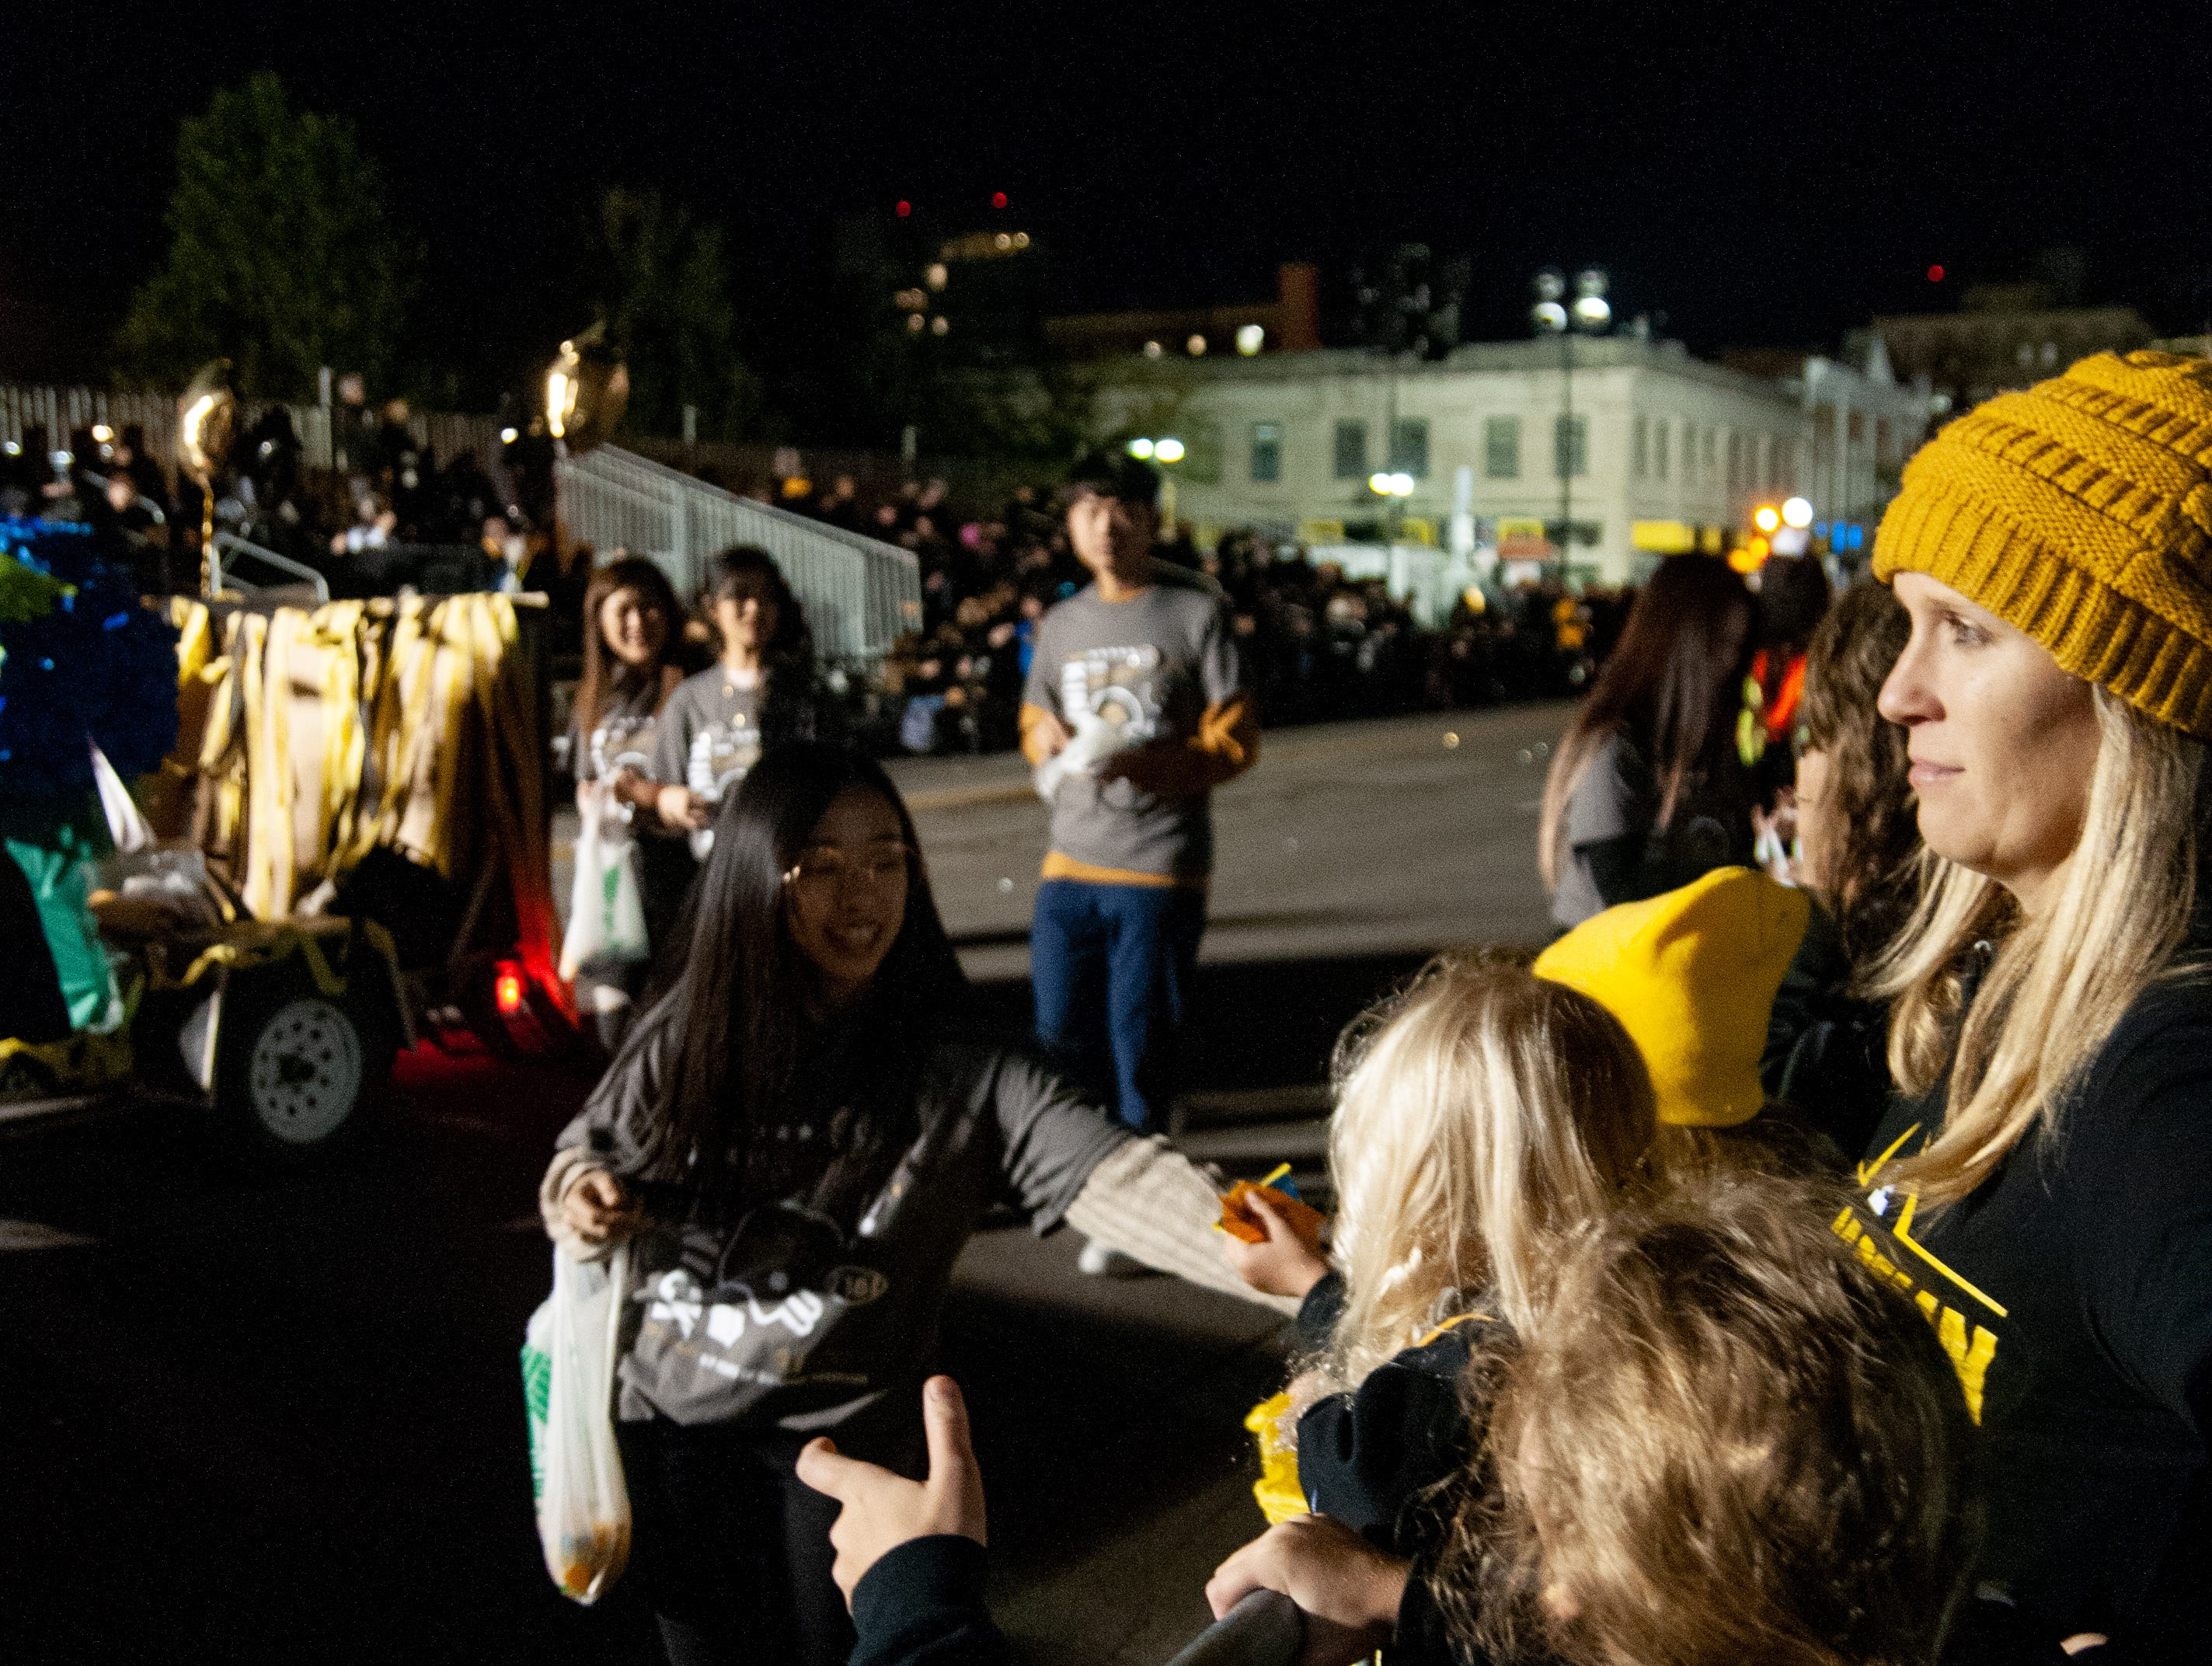 Kids receive candy during the 2018 Homecoming parade, Friday, Oct. 19, 2018, in Iowa City.